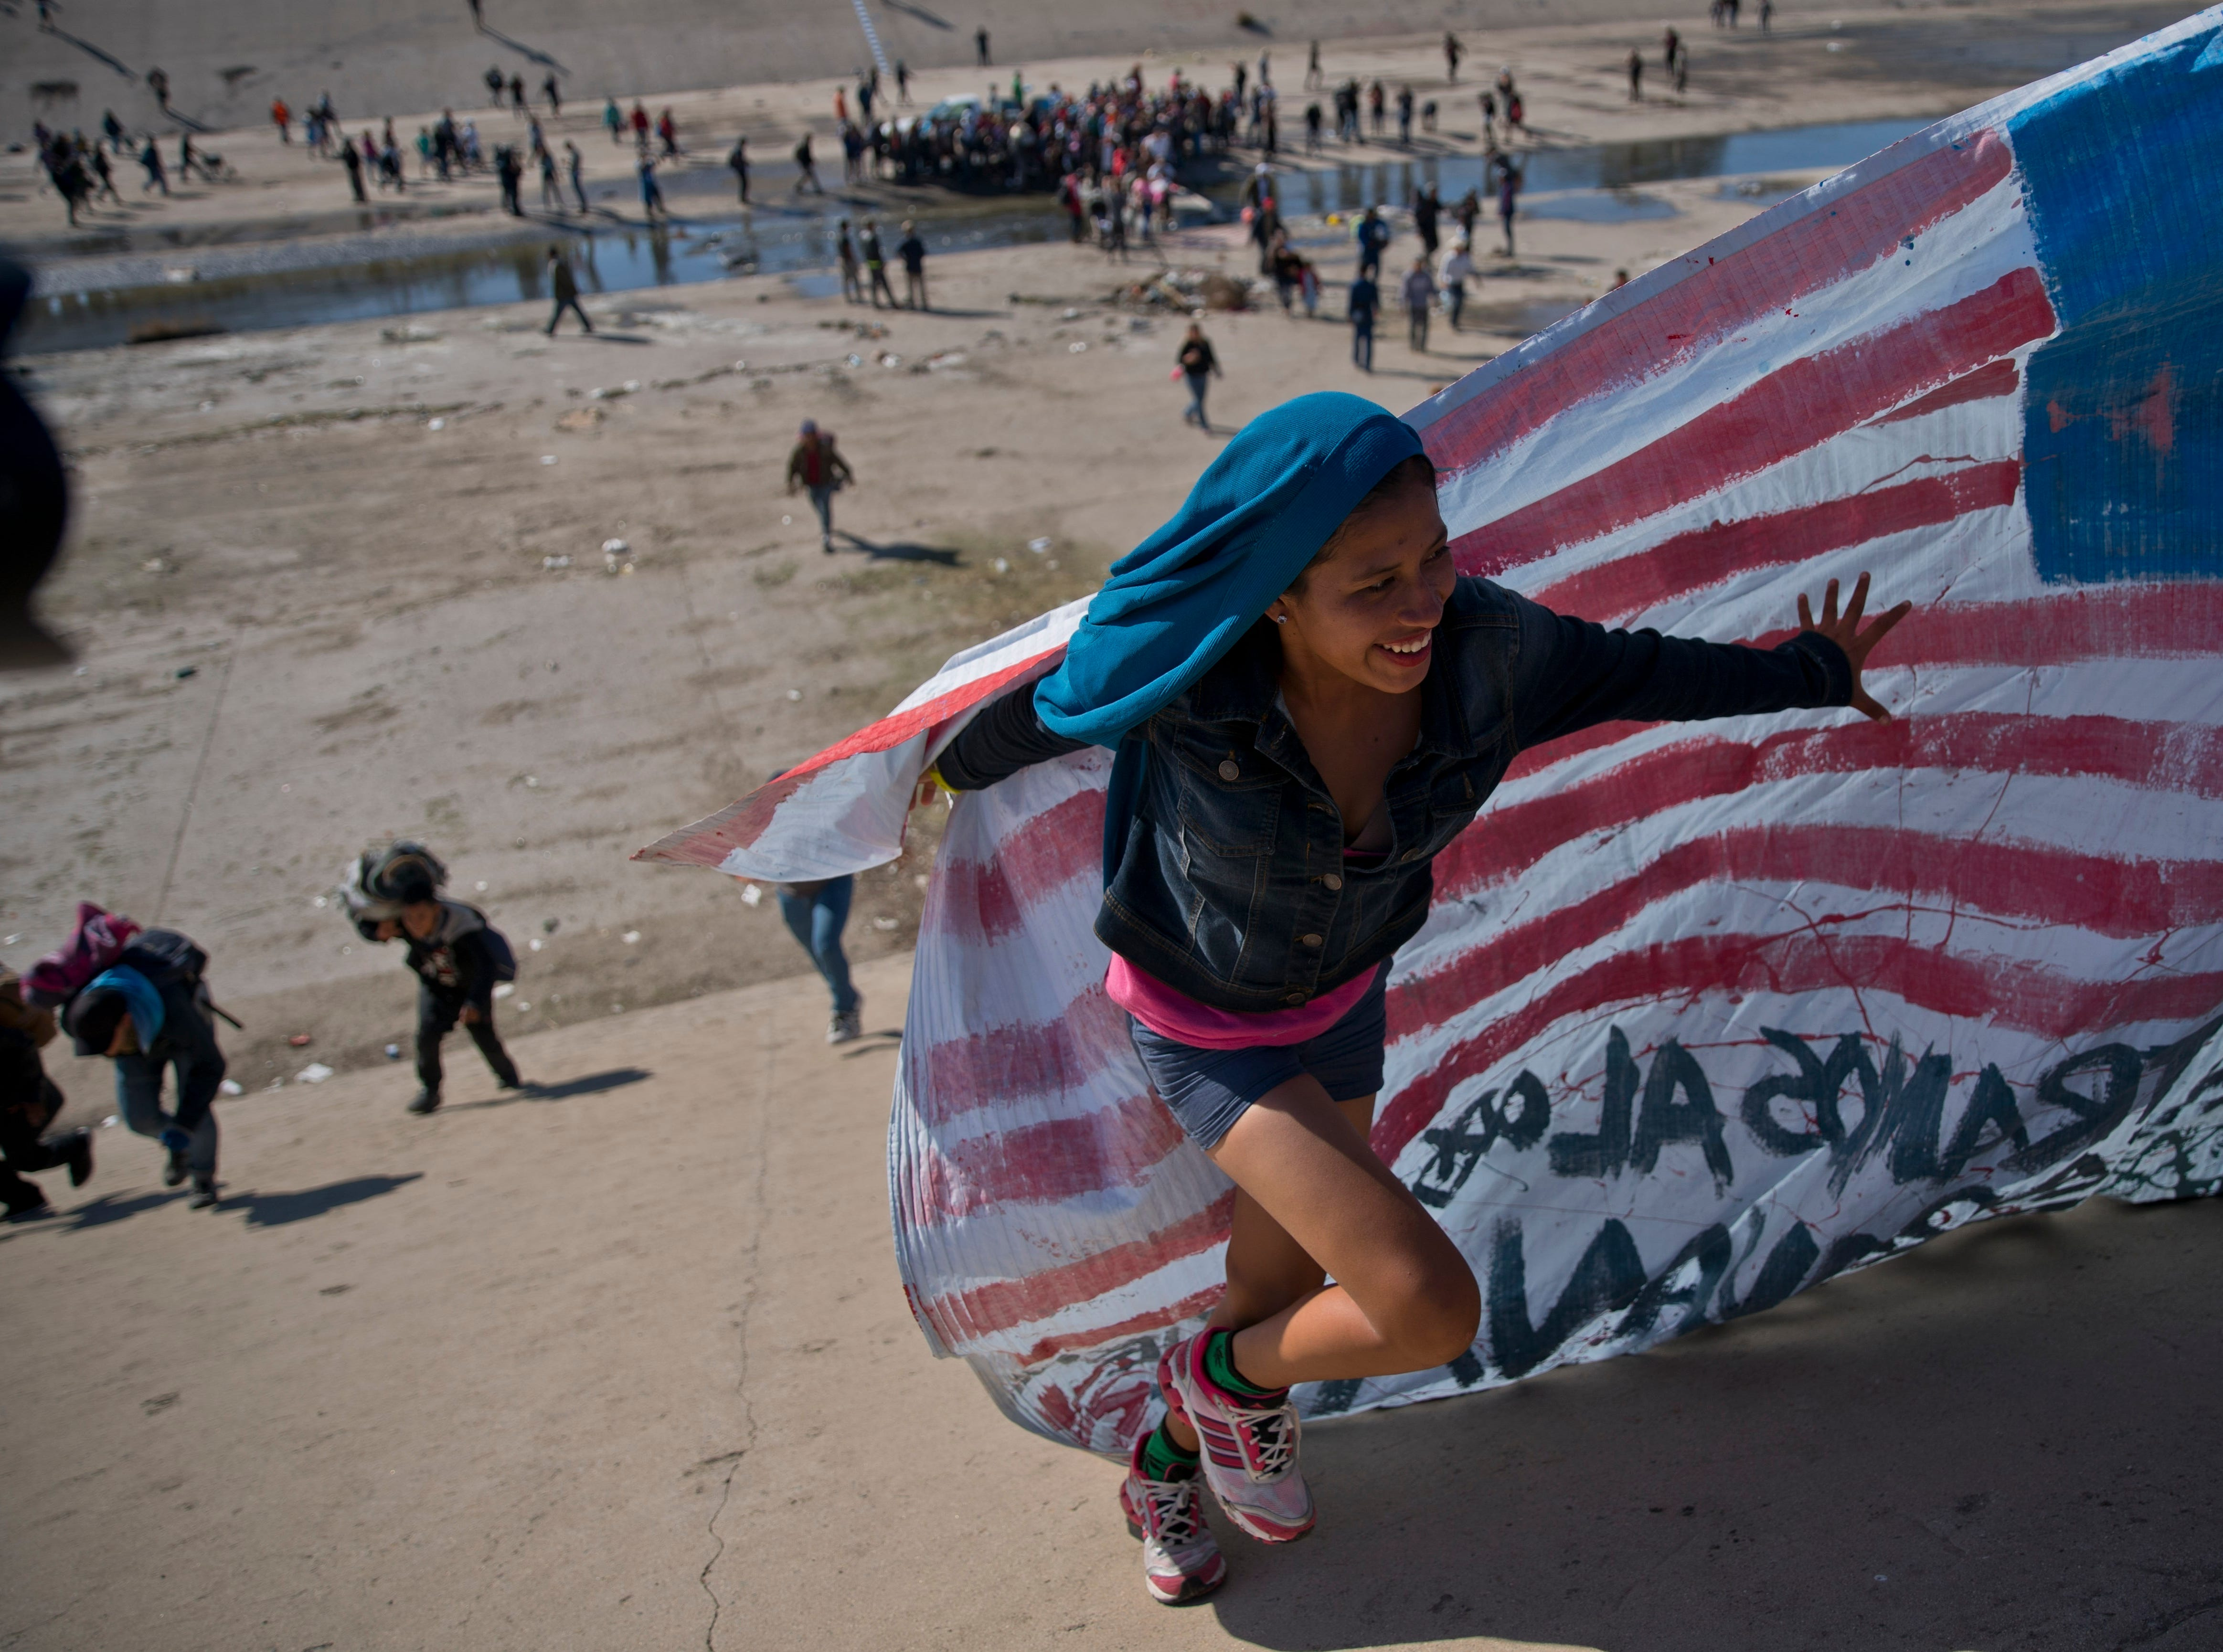 A migrant woman helps carry a handmade U.S. flag up the riverbank at the Mexico-U.S. border after getting past Mexican police at the Chaparral border crossing in Tijuana, Mexico, Nov. 25, 2018, as a group of migrants tries to reach the U.S.